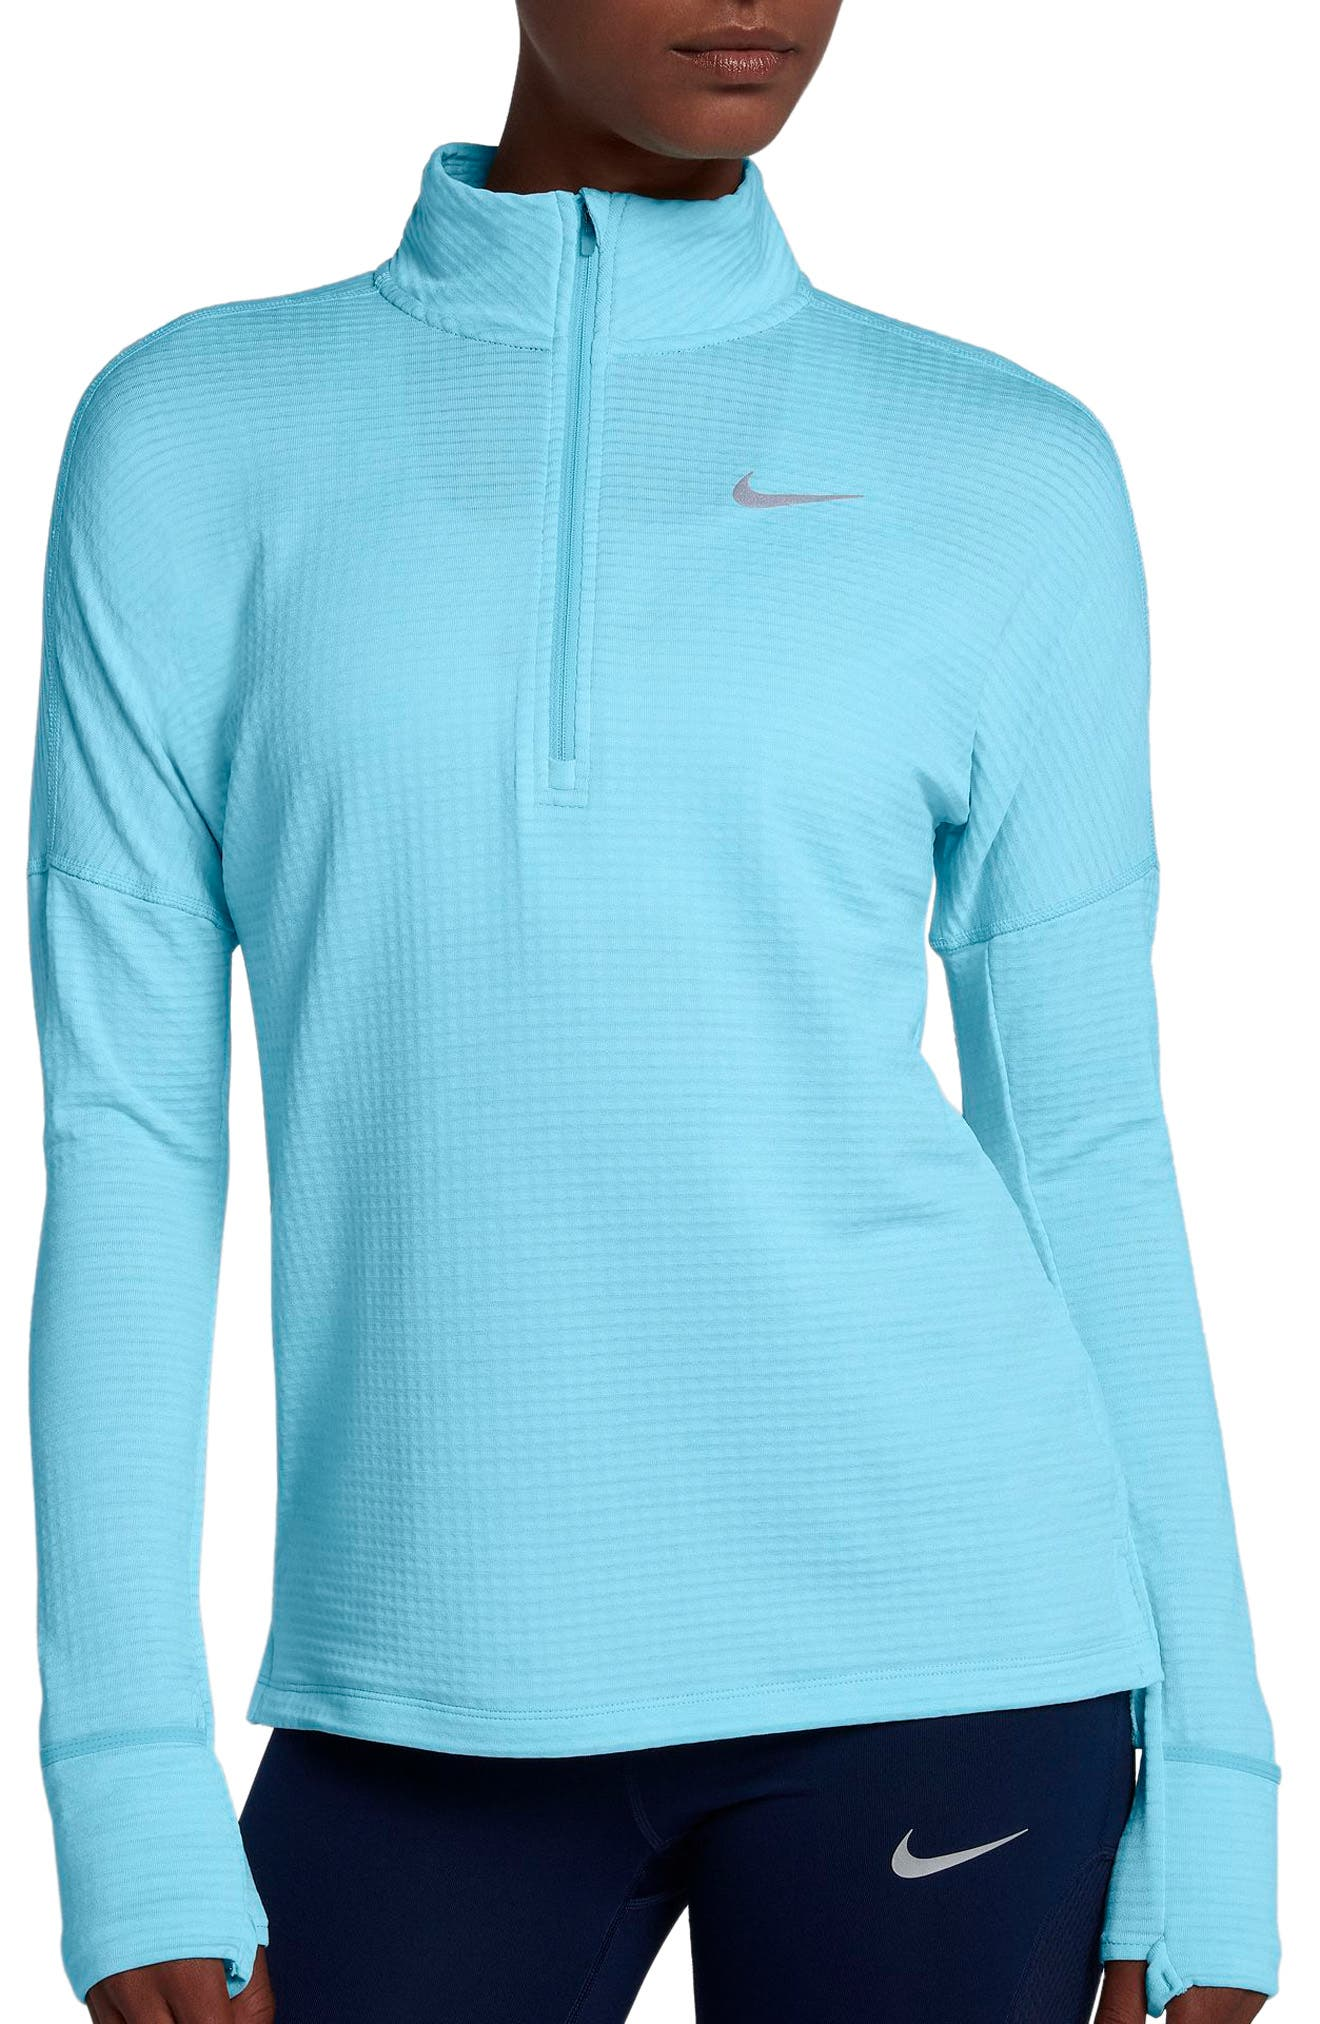 Therma Sphere Element Running Pullover Top,                             Main thumbnail 1, color,                             Polarized Blue/ Htr